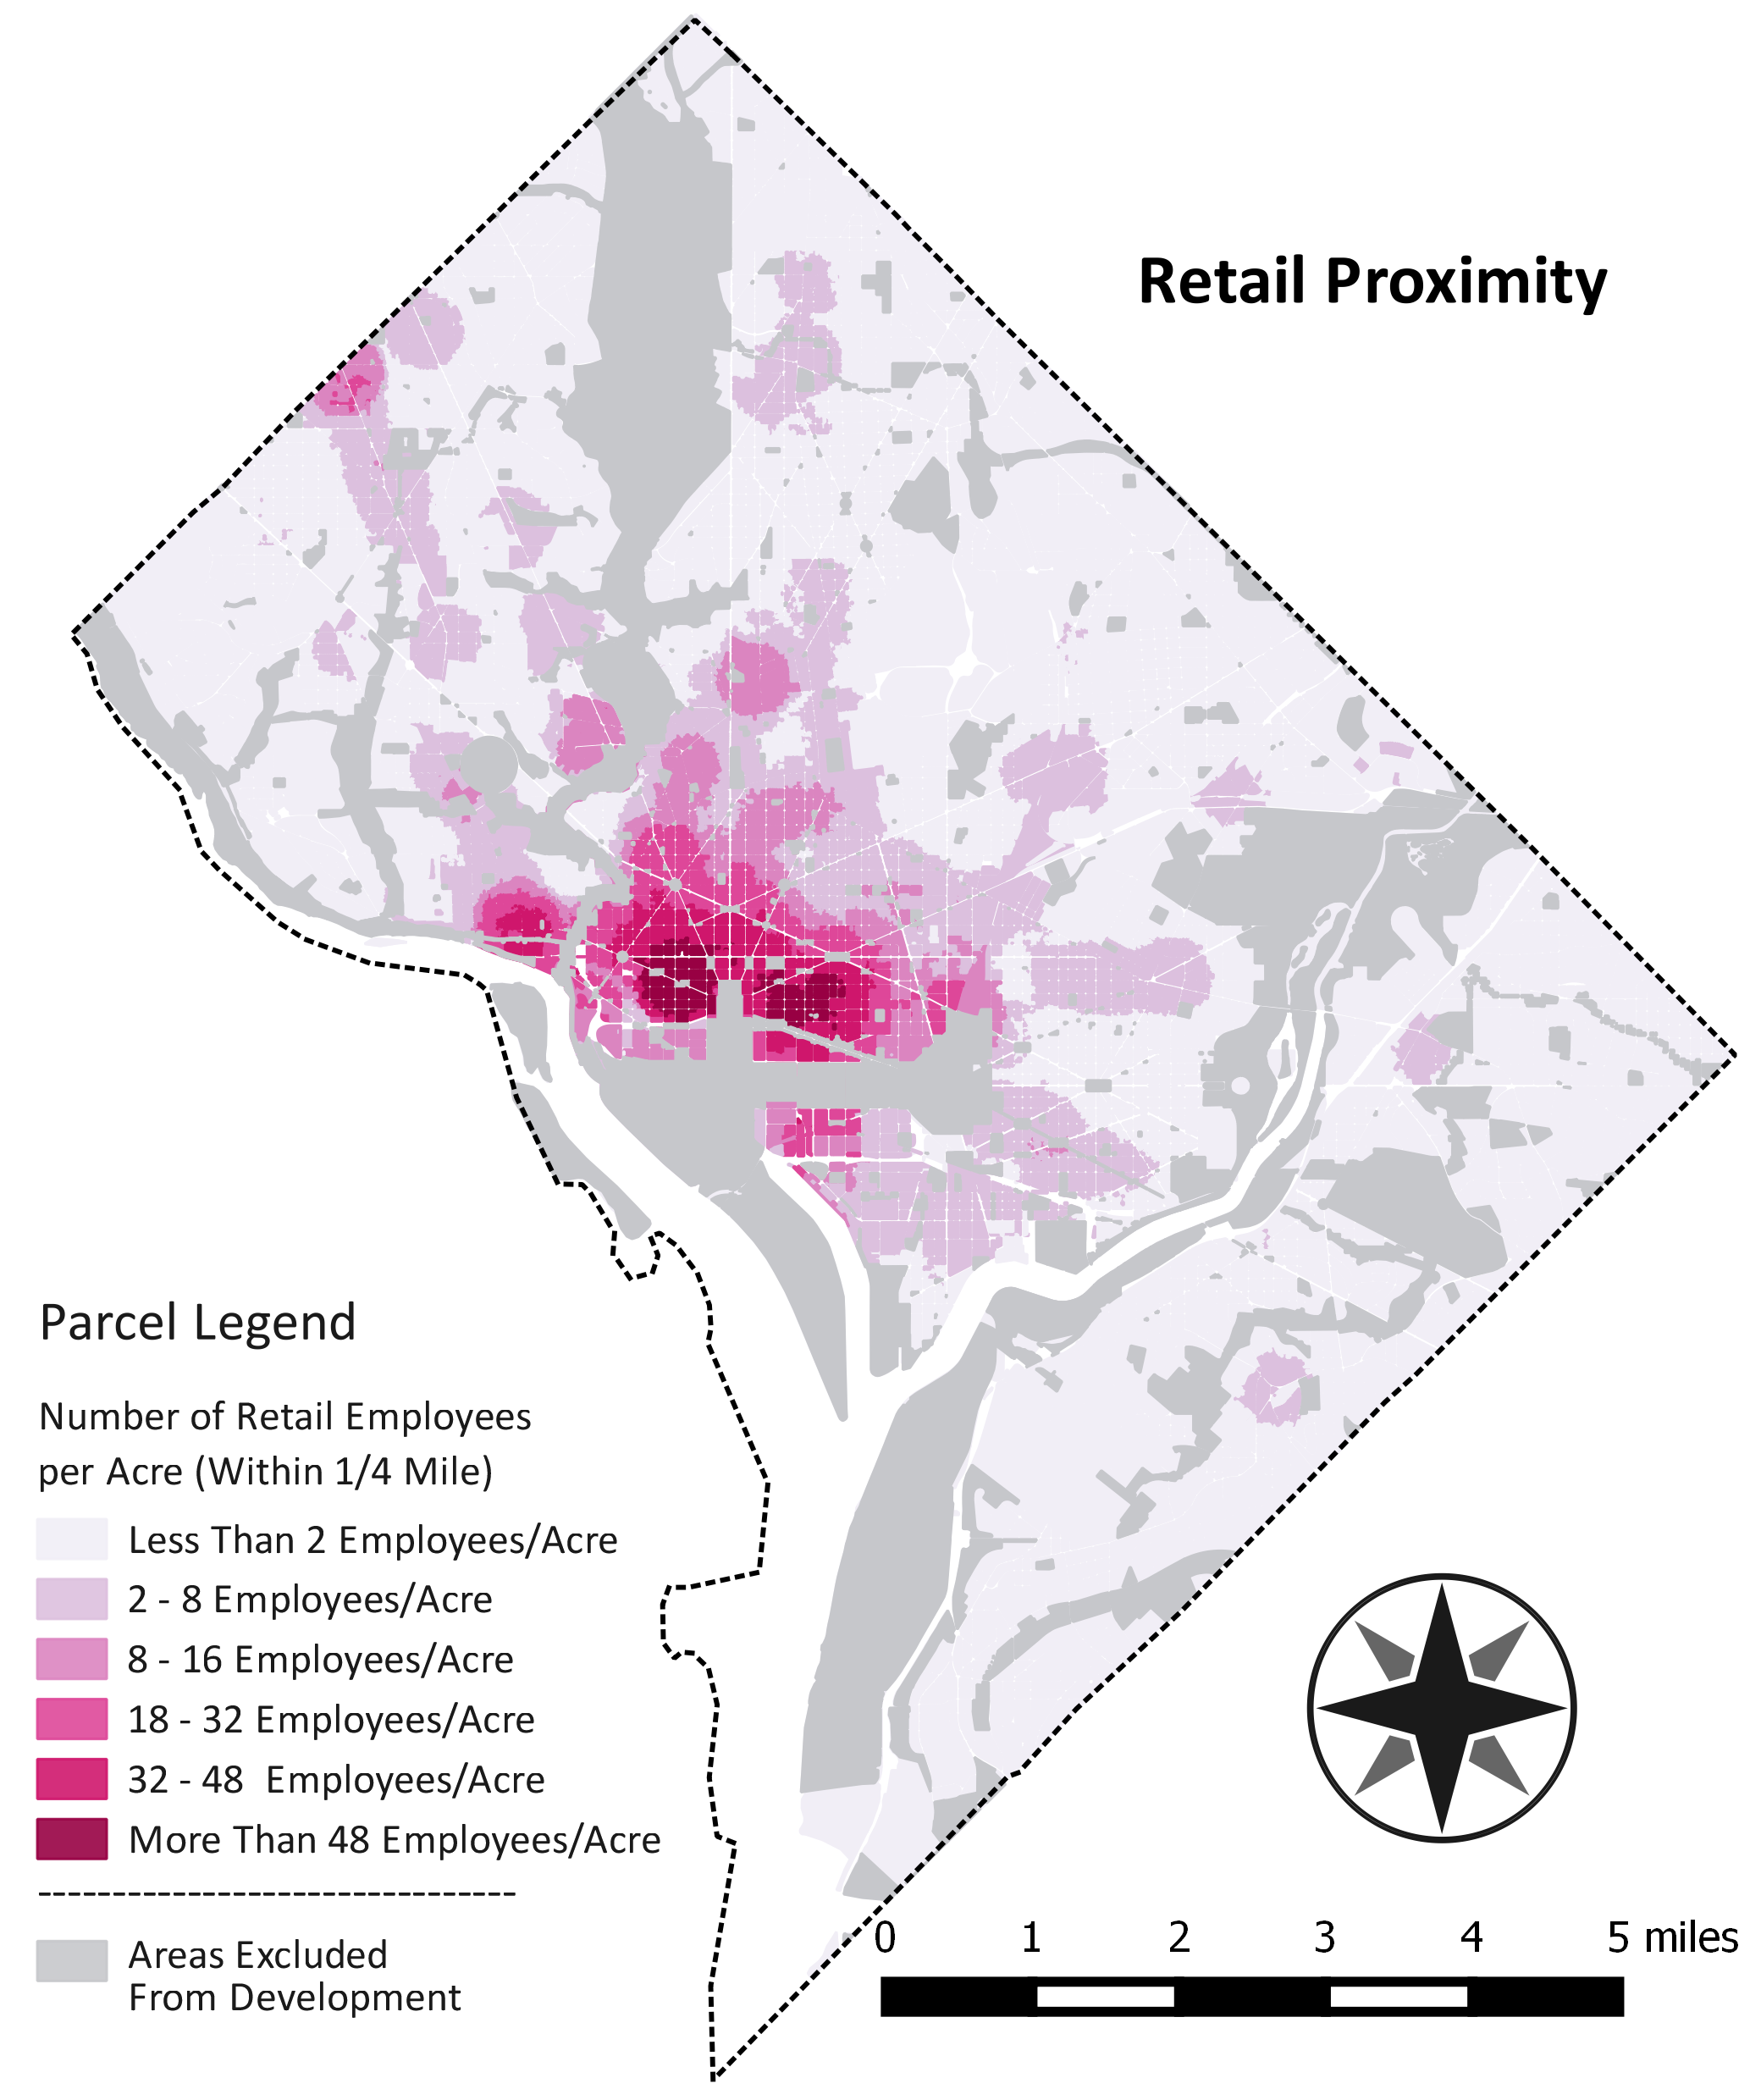 Map of Retail Proximity